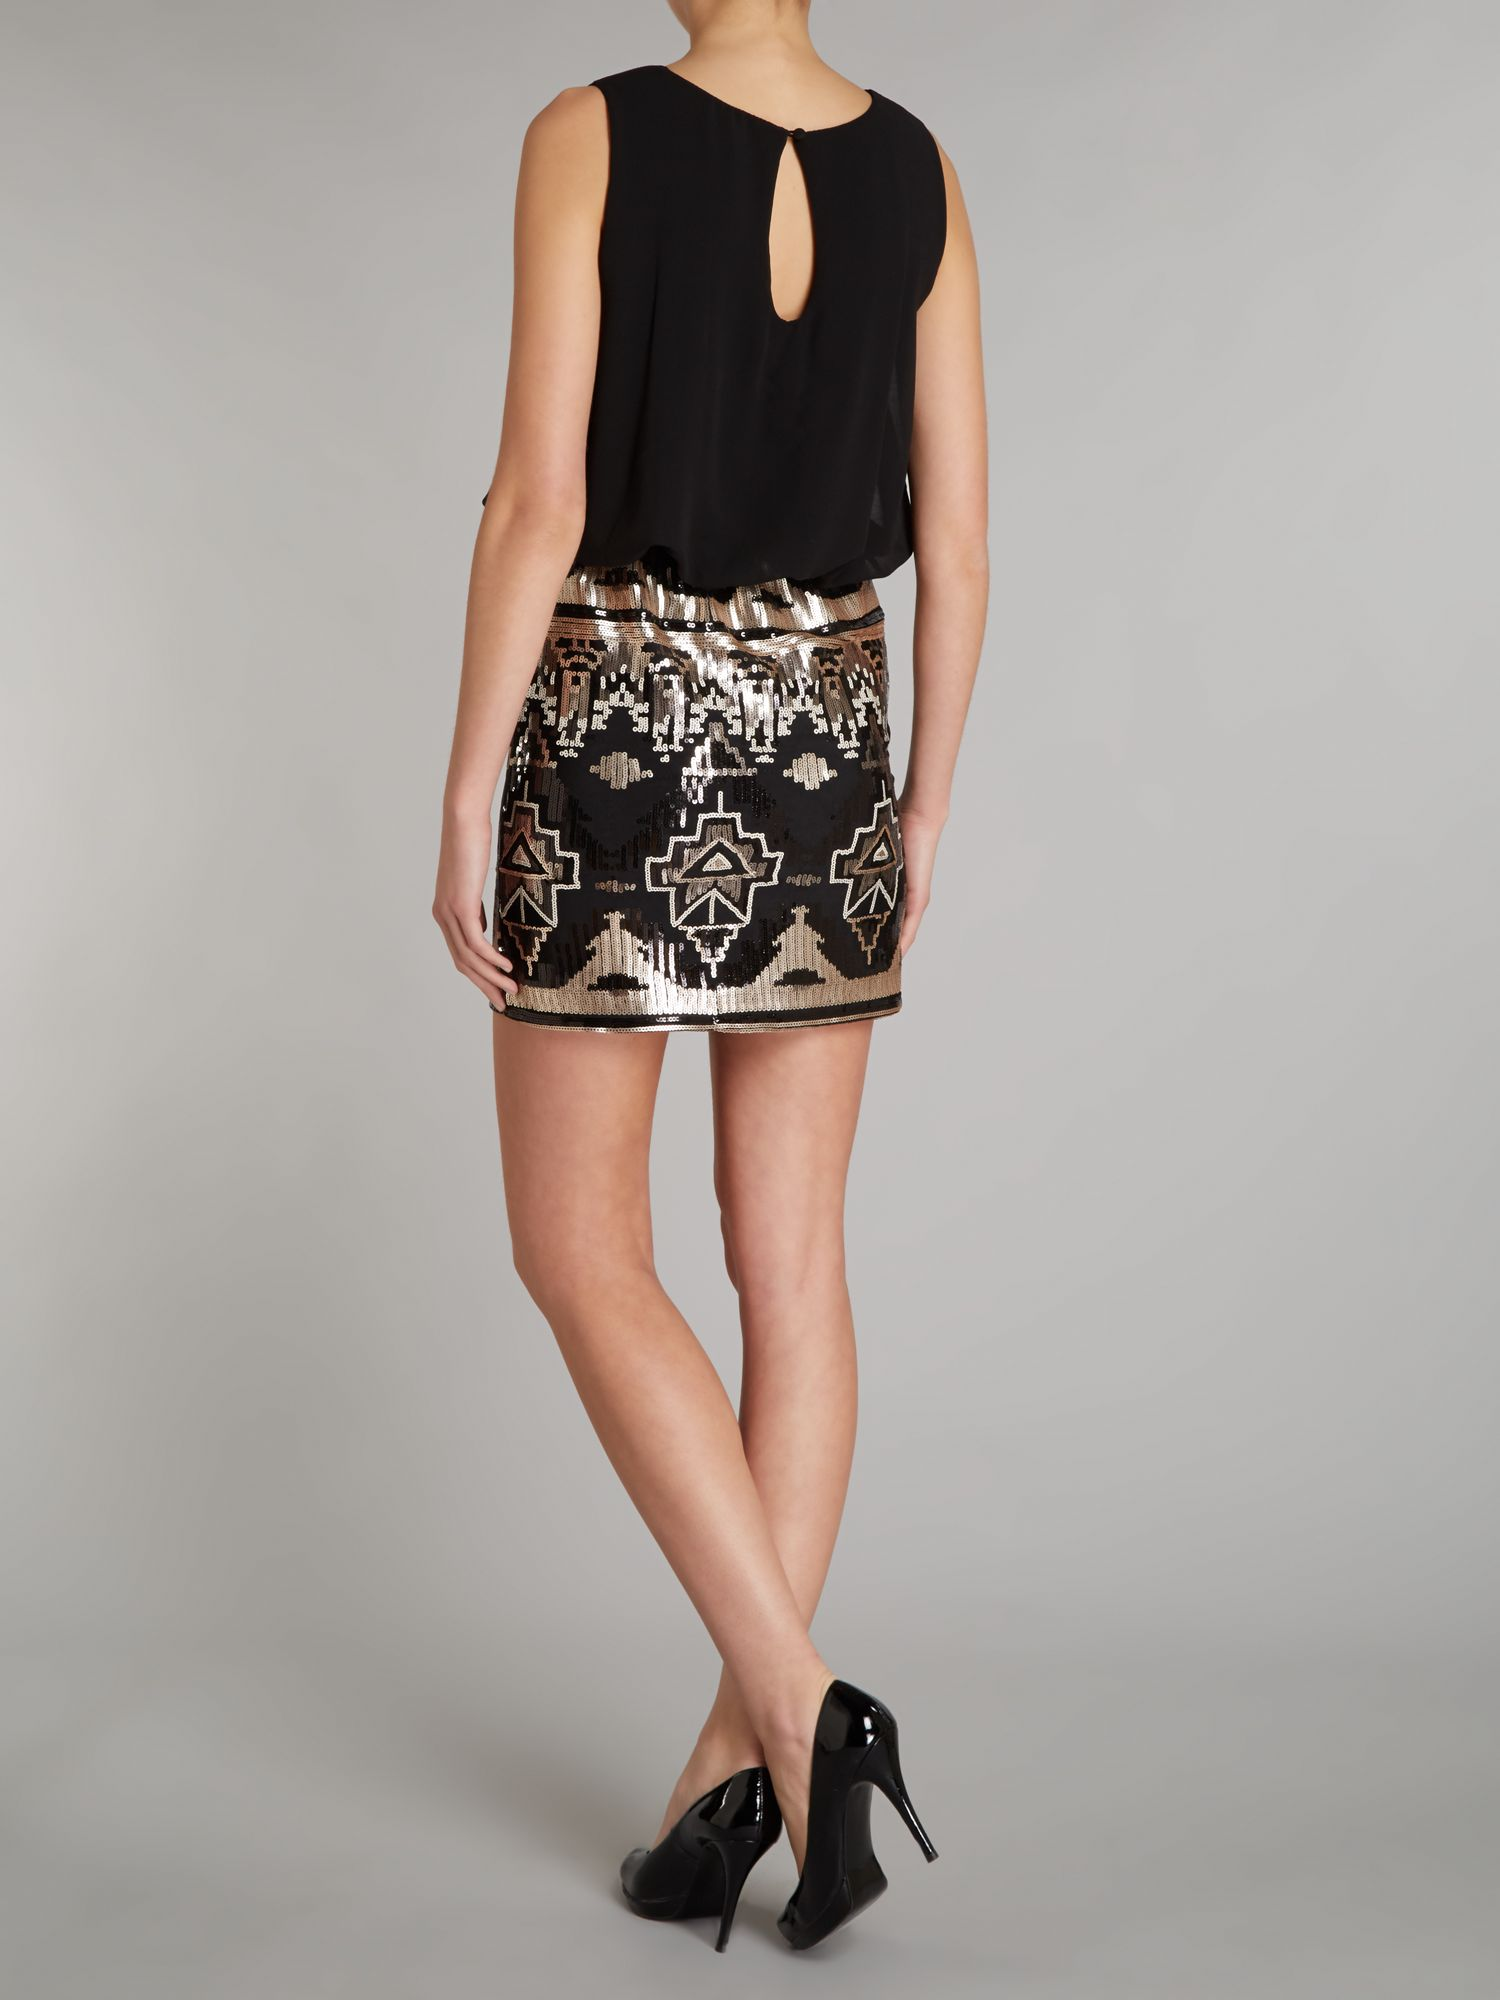 Images of Sequin Skirt Dress - The Fashions Of Paradise